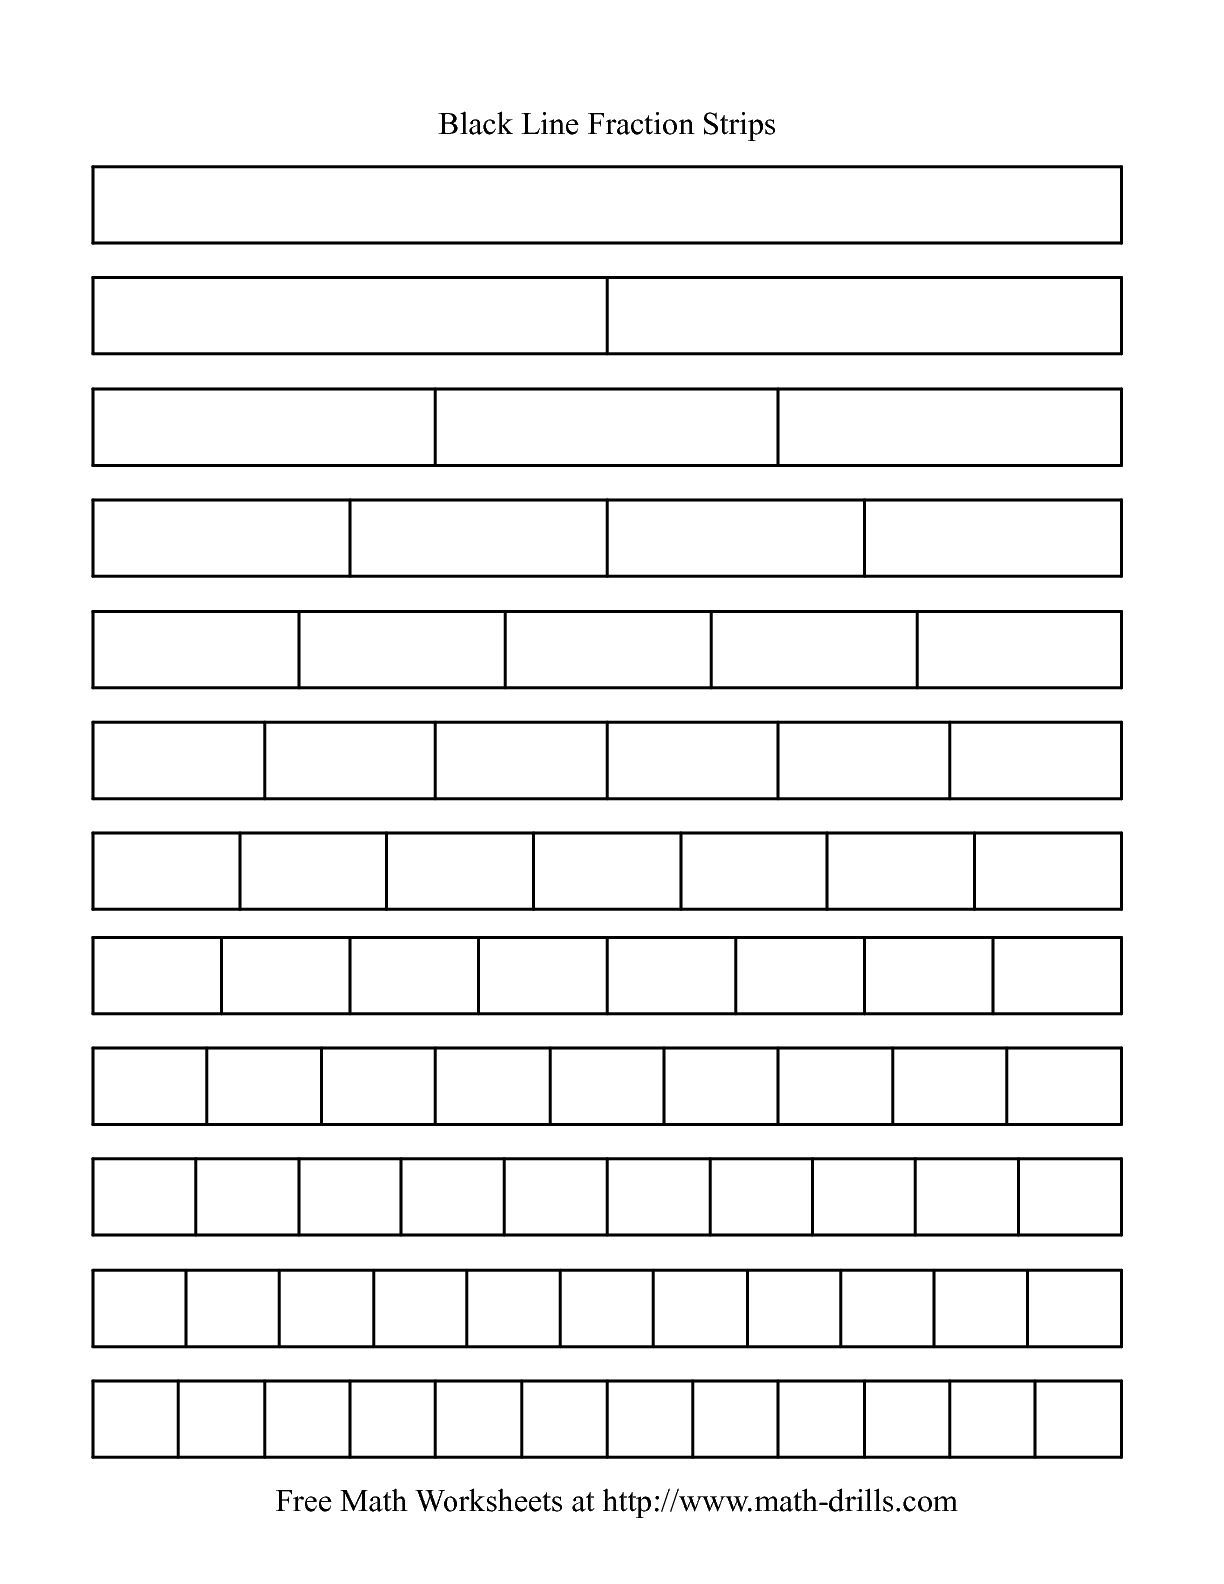 The Blackline Fraction Strips Unlabeled Math Worksheet From The Fractions Worksheet Page At Math Drills Com Fractions Math Fractions Math Methods